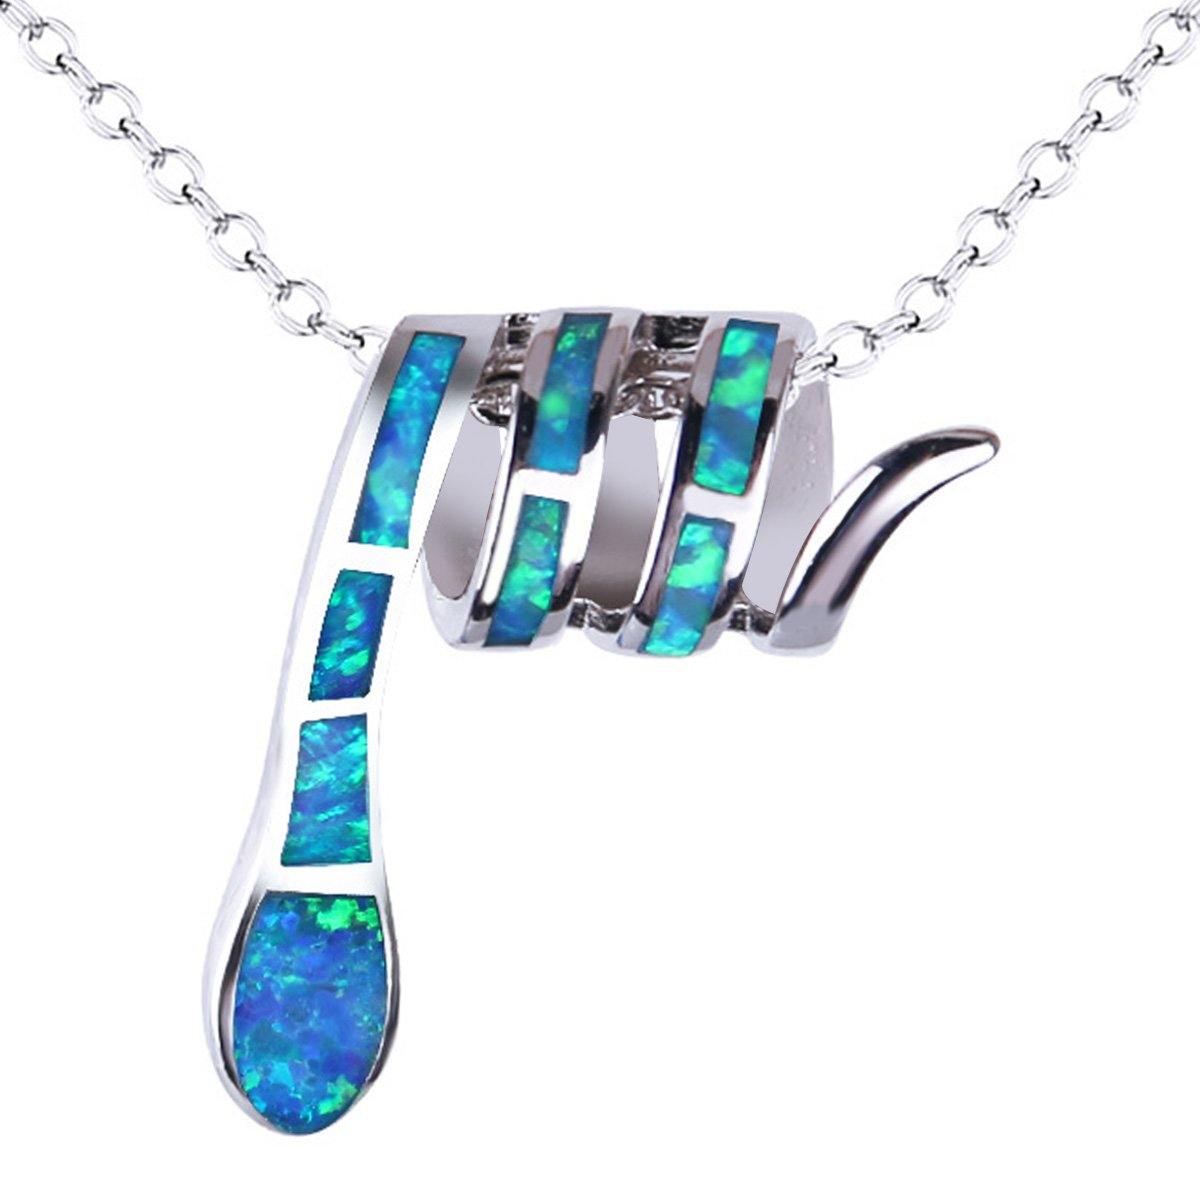 KELITCH Initial Choker Necklace Syuthetic Opal Extension Small Sideways Cross First Necklace (Blue)